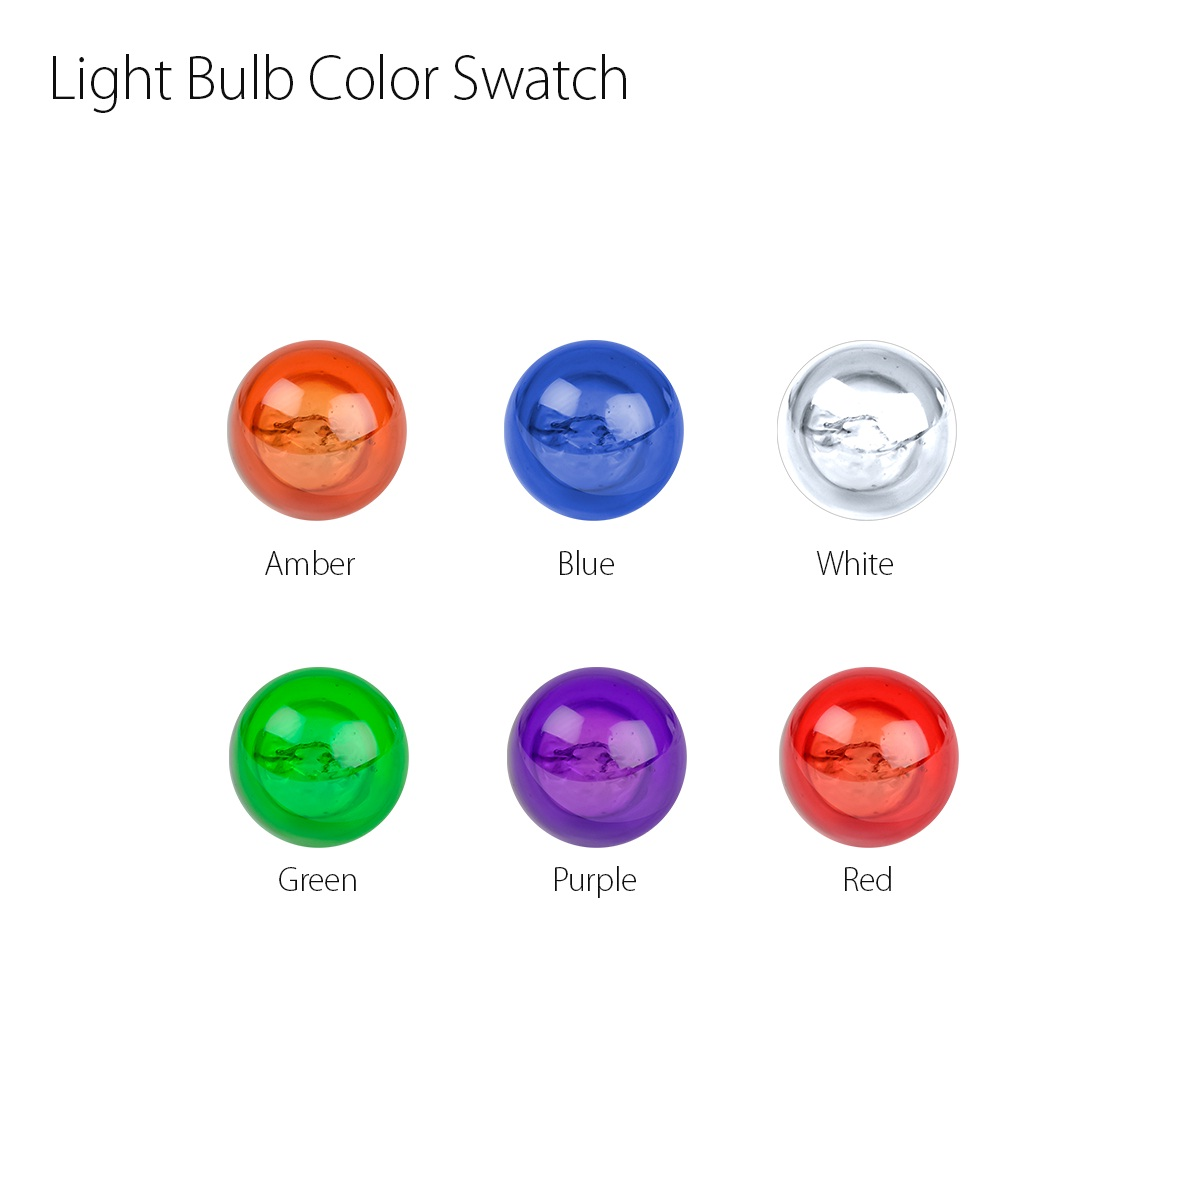 #89 Miniature Replacement Light Bulb Color Swatch